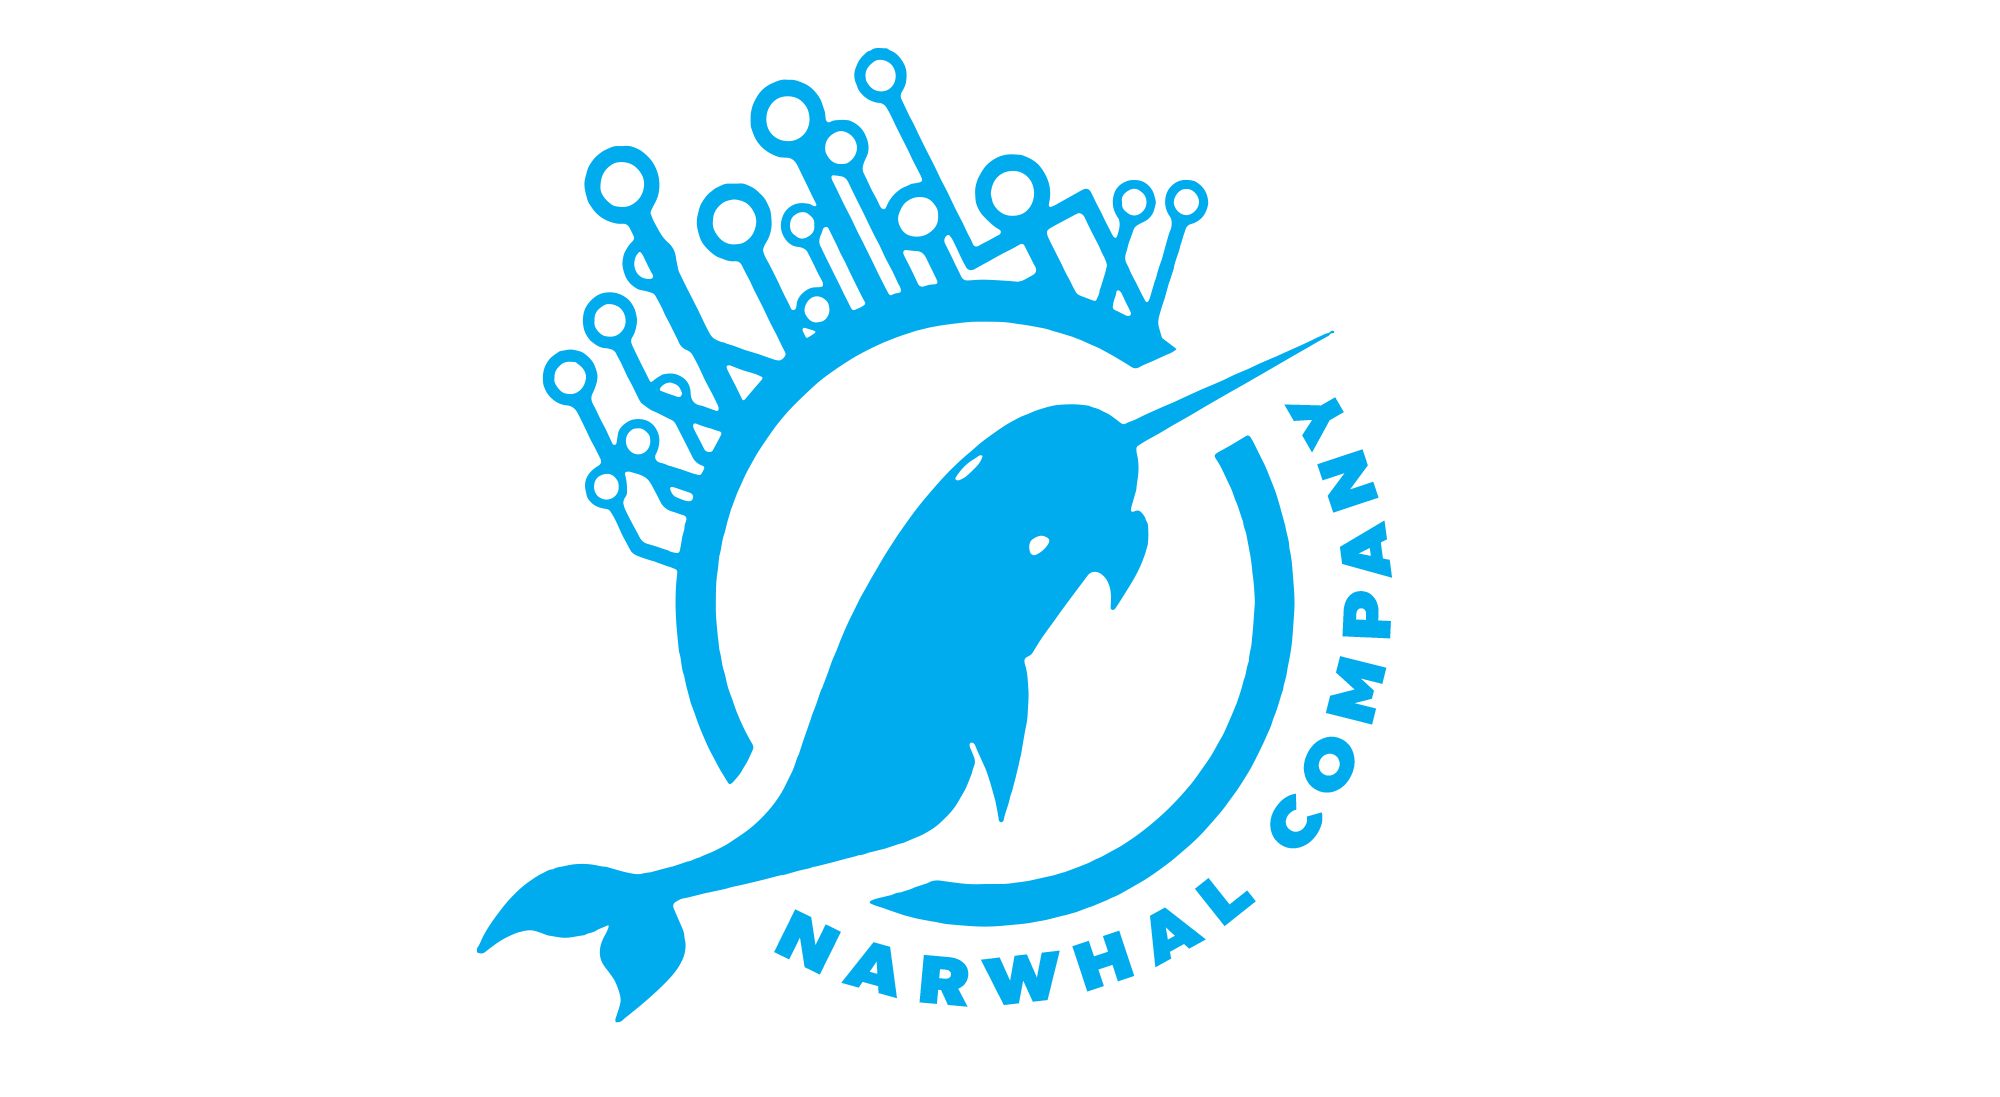 Narwhal clipart easy. Tech